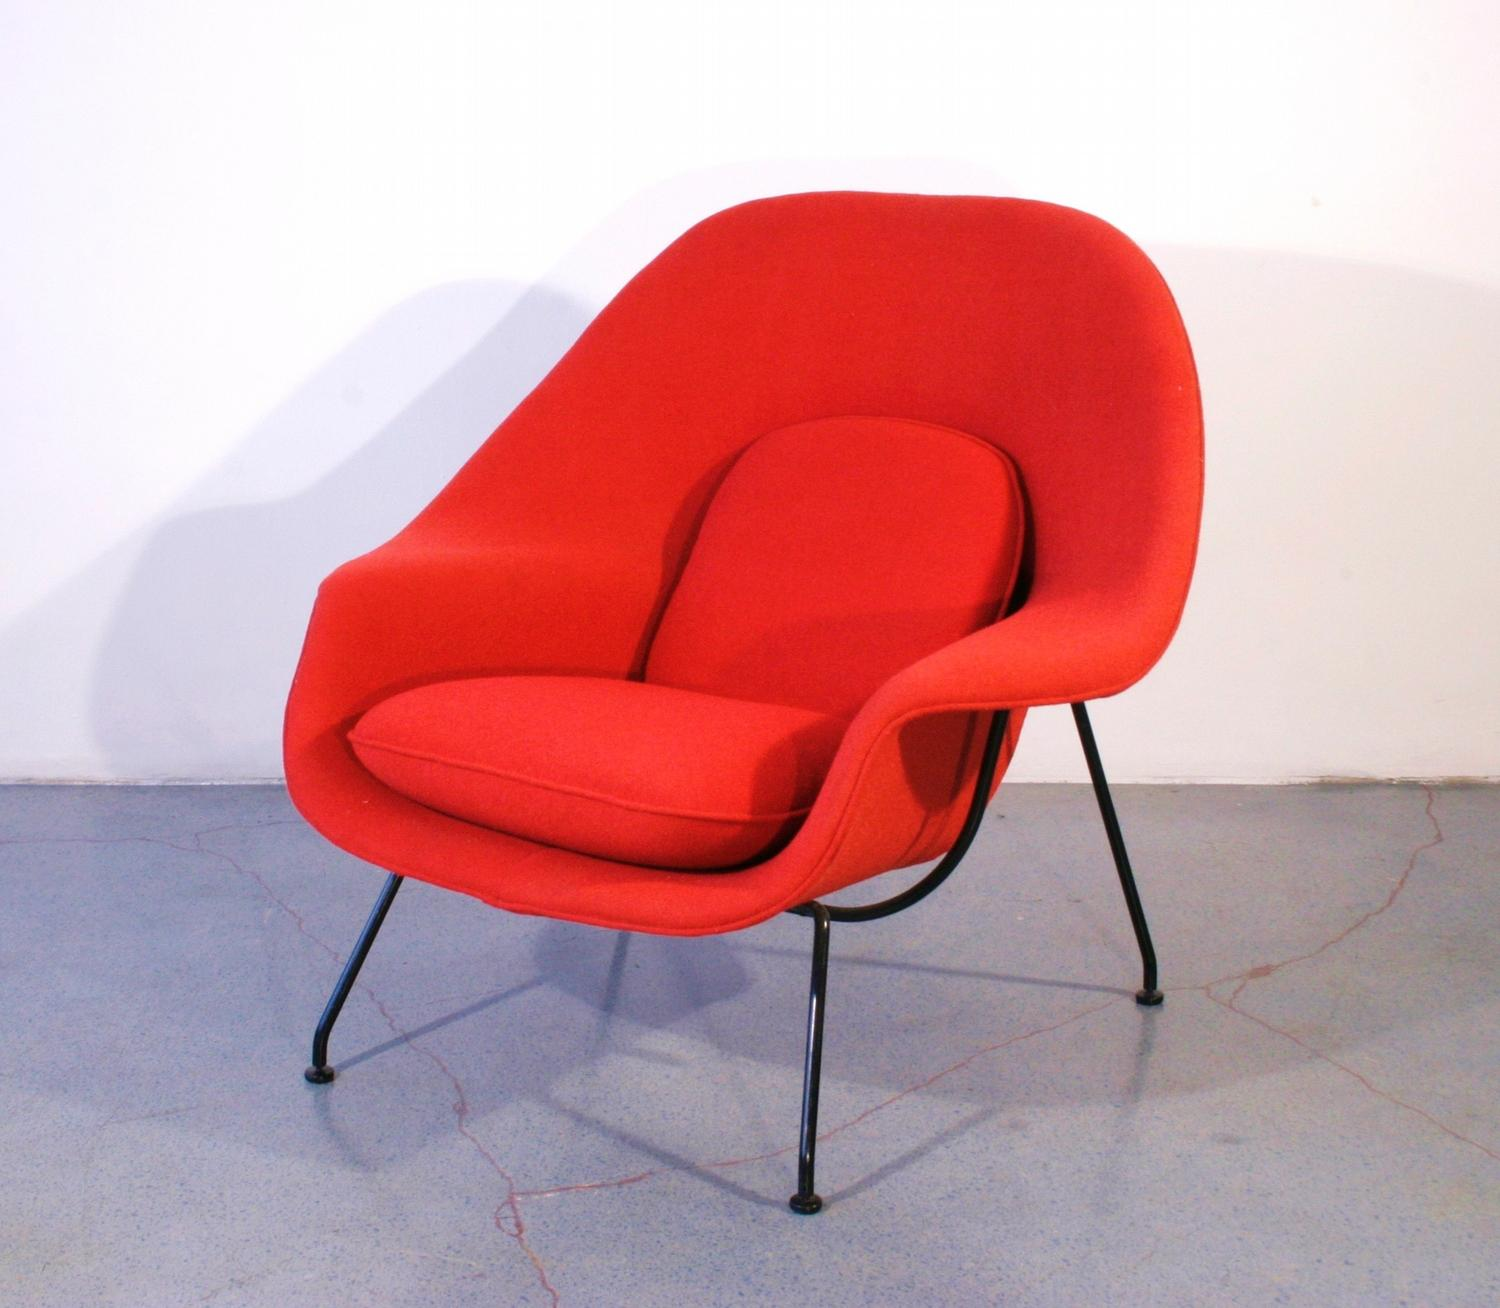 Merveilleux Image 1 : Eero Saarinen For Knoll Womb Chair C.